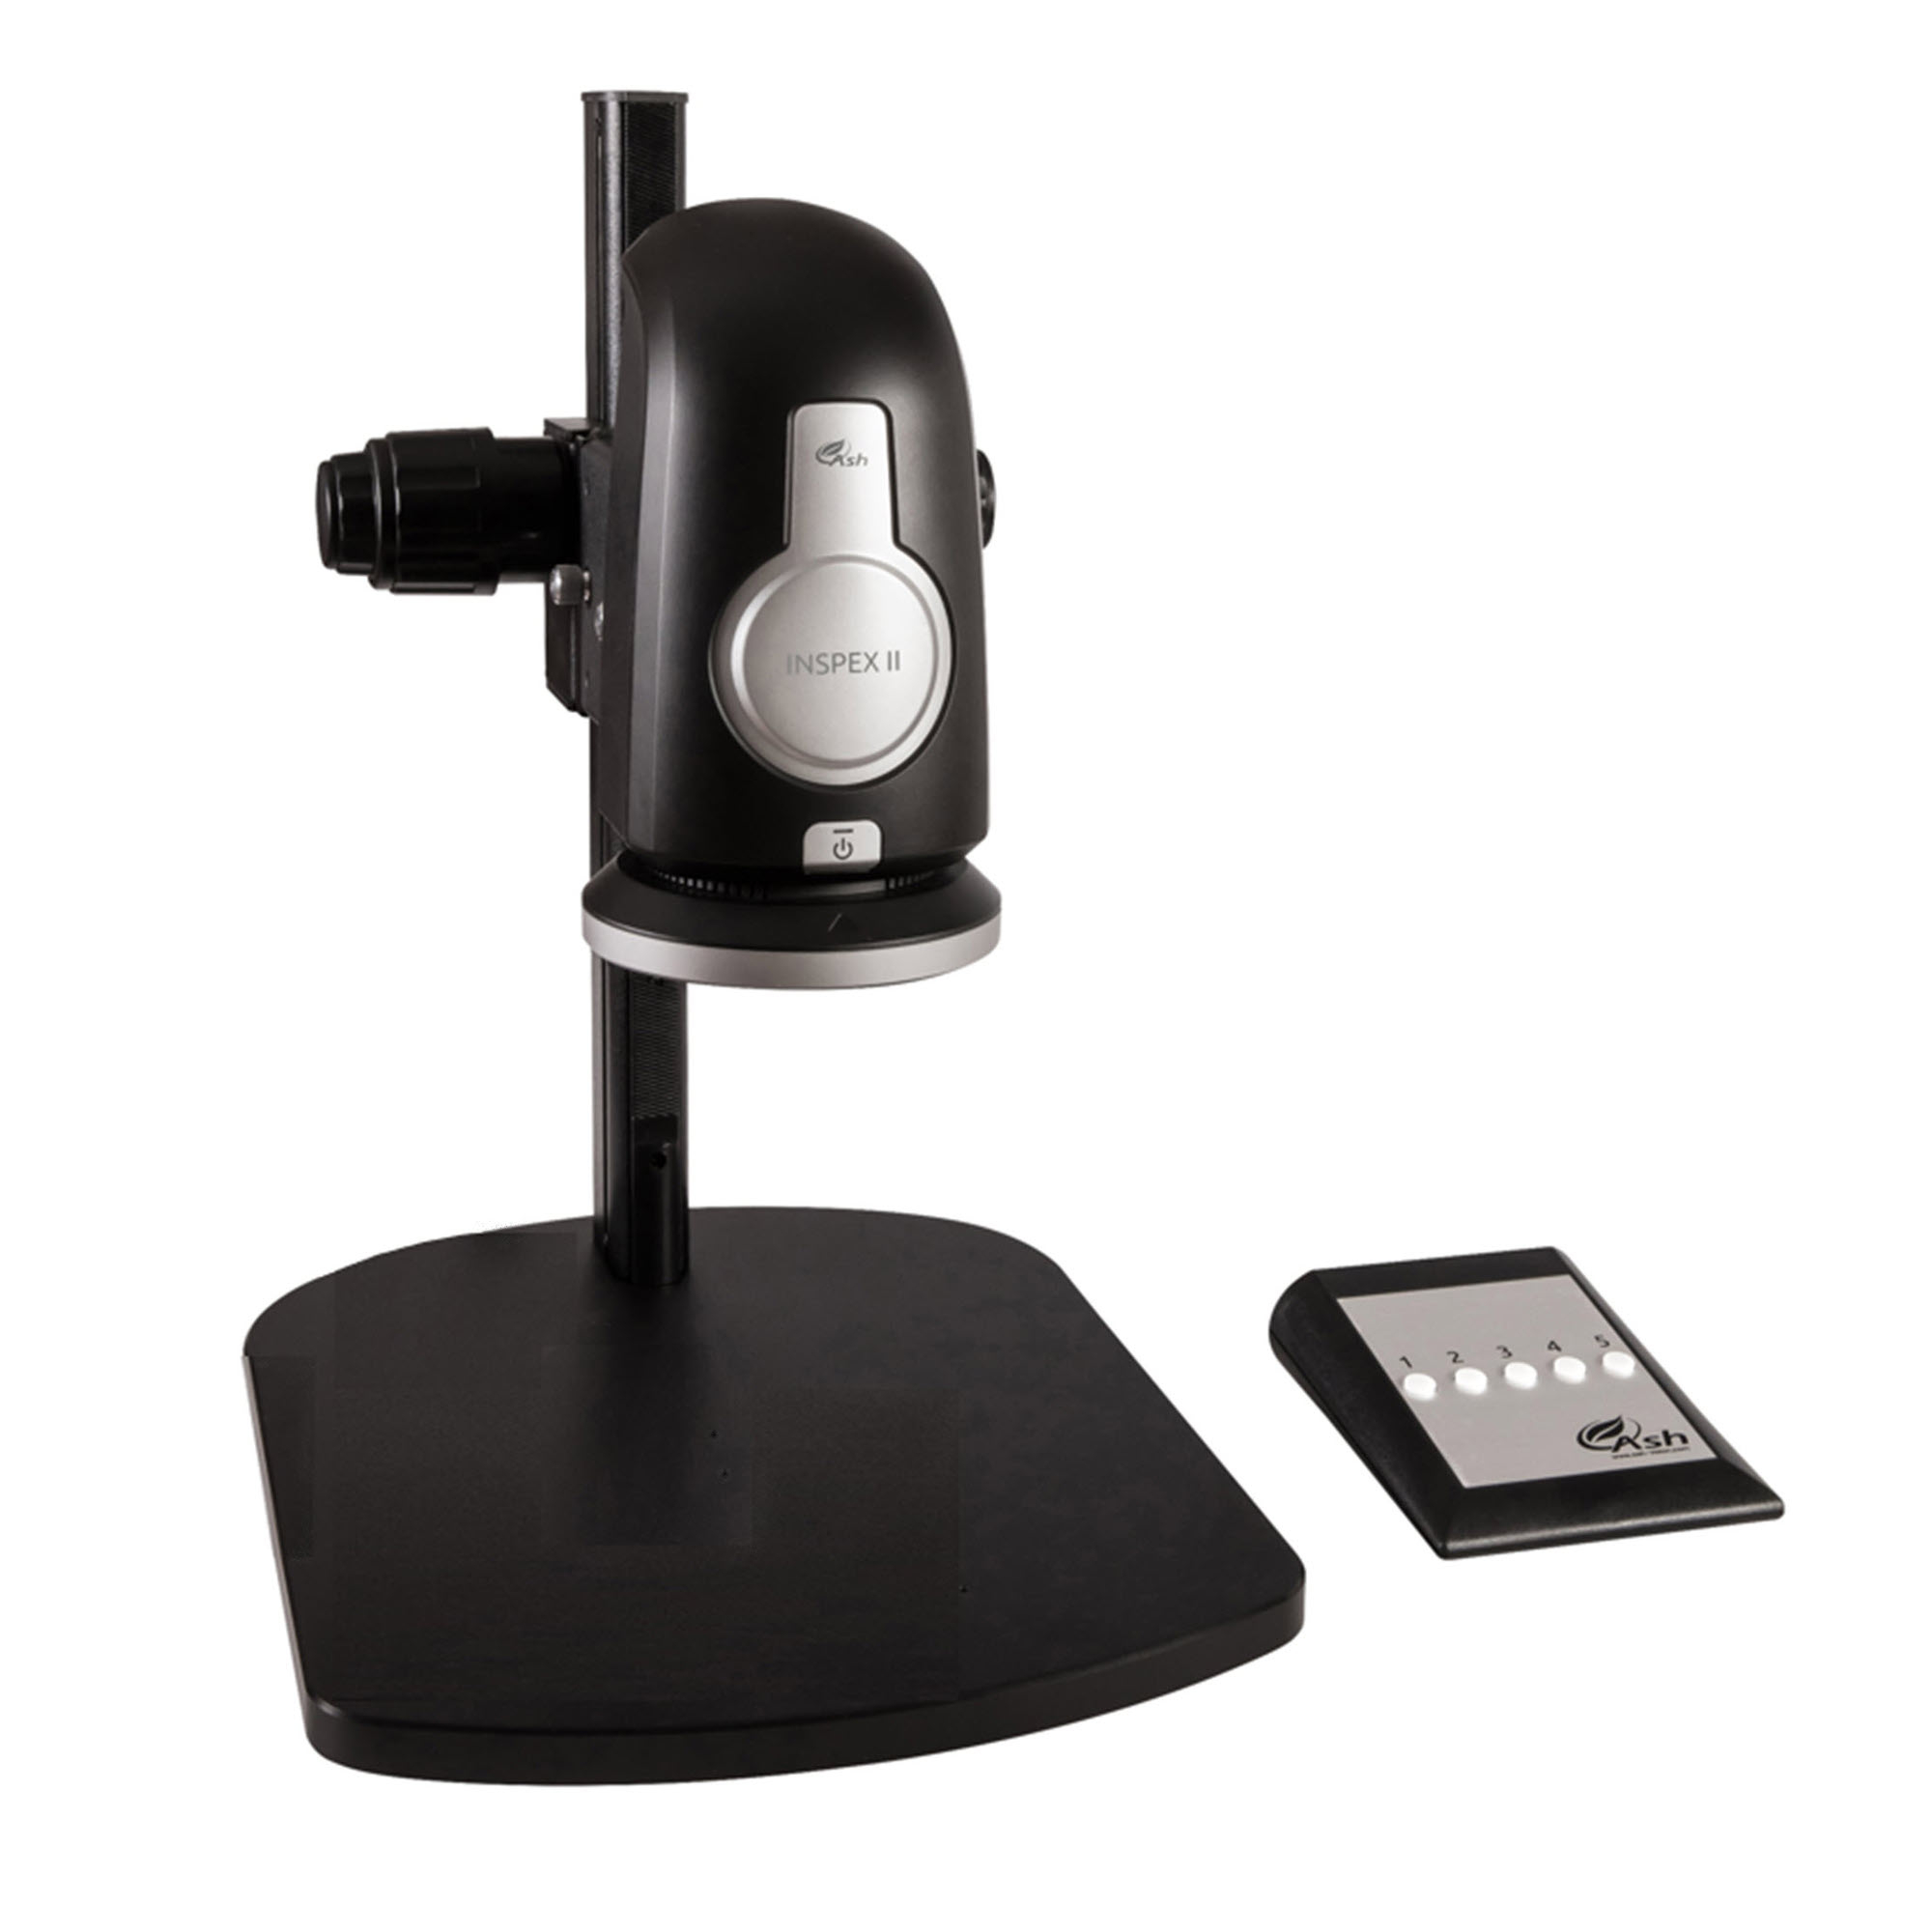 INSPEX II digital microscope